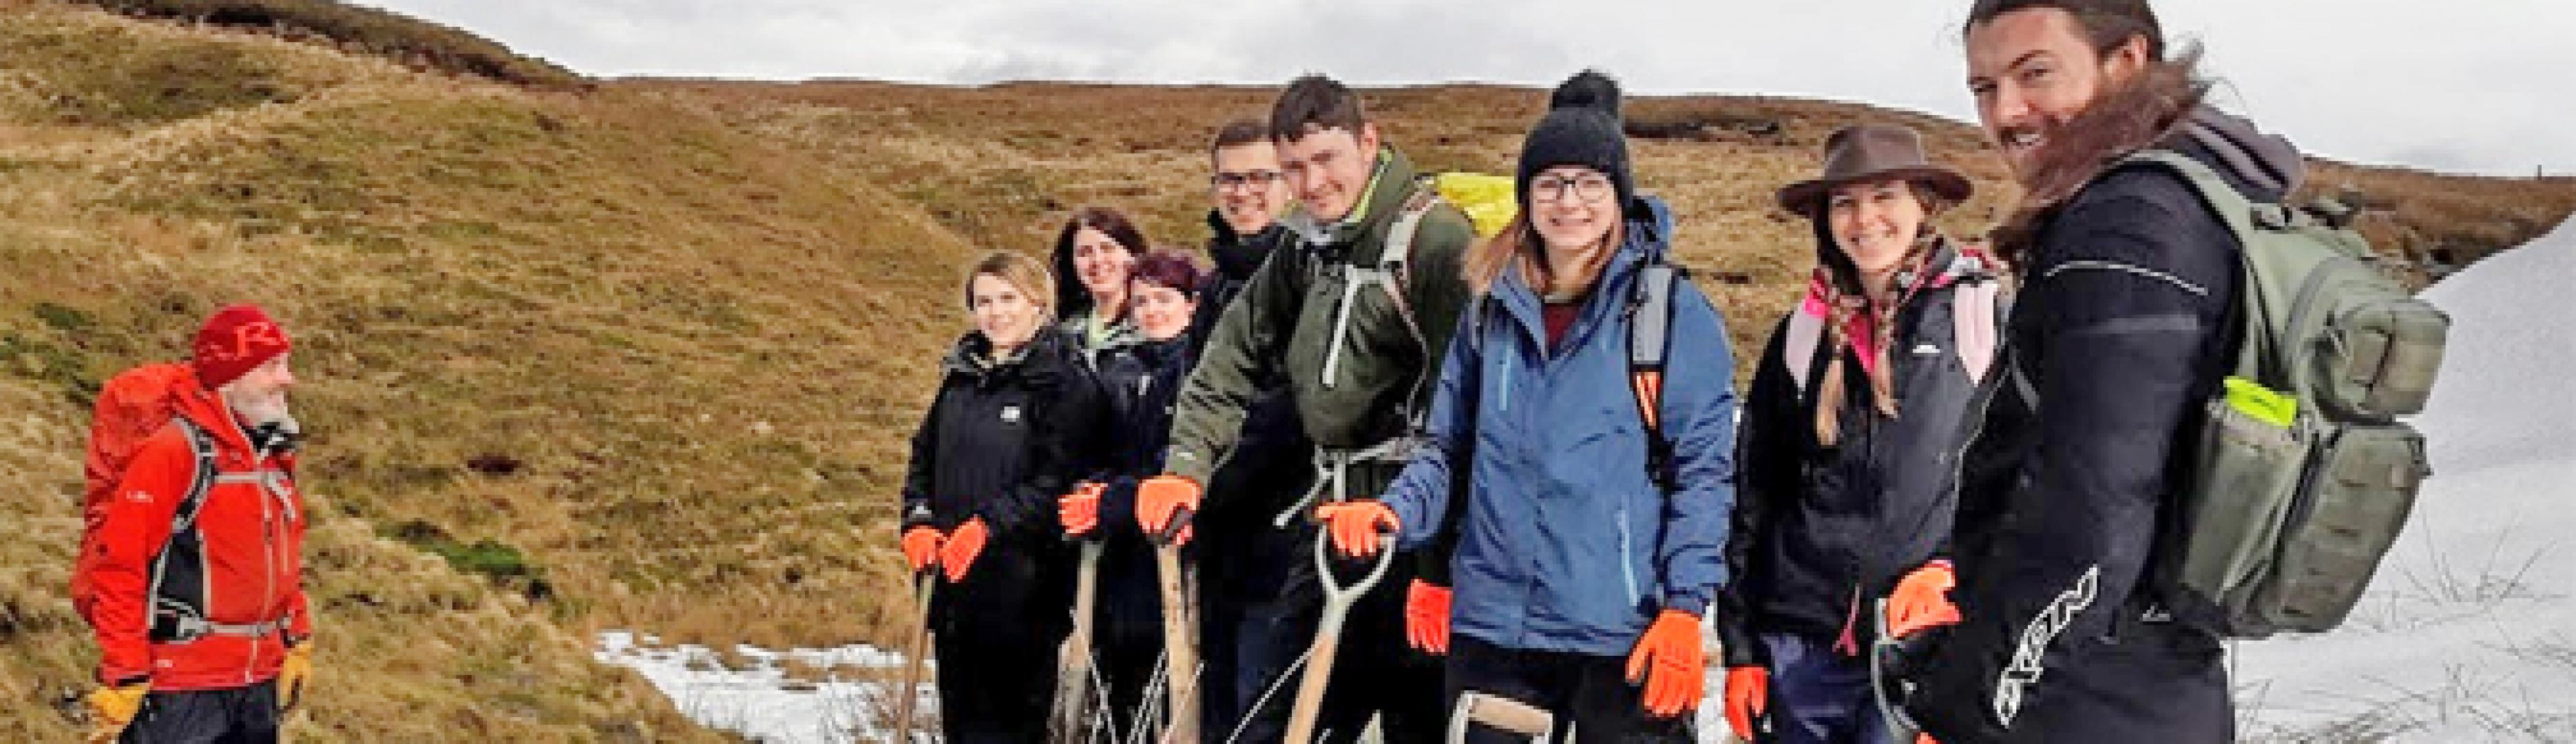 Contours Charity Work in the Peak District wilds